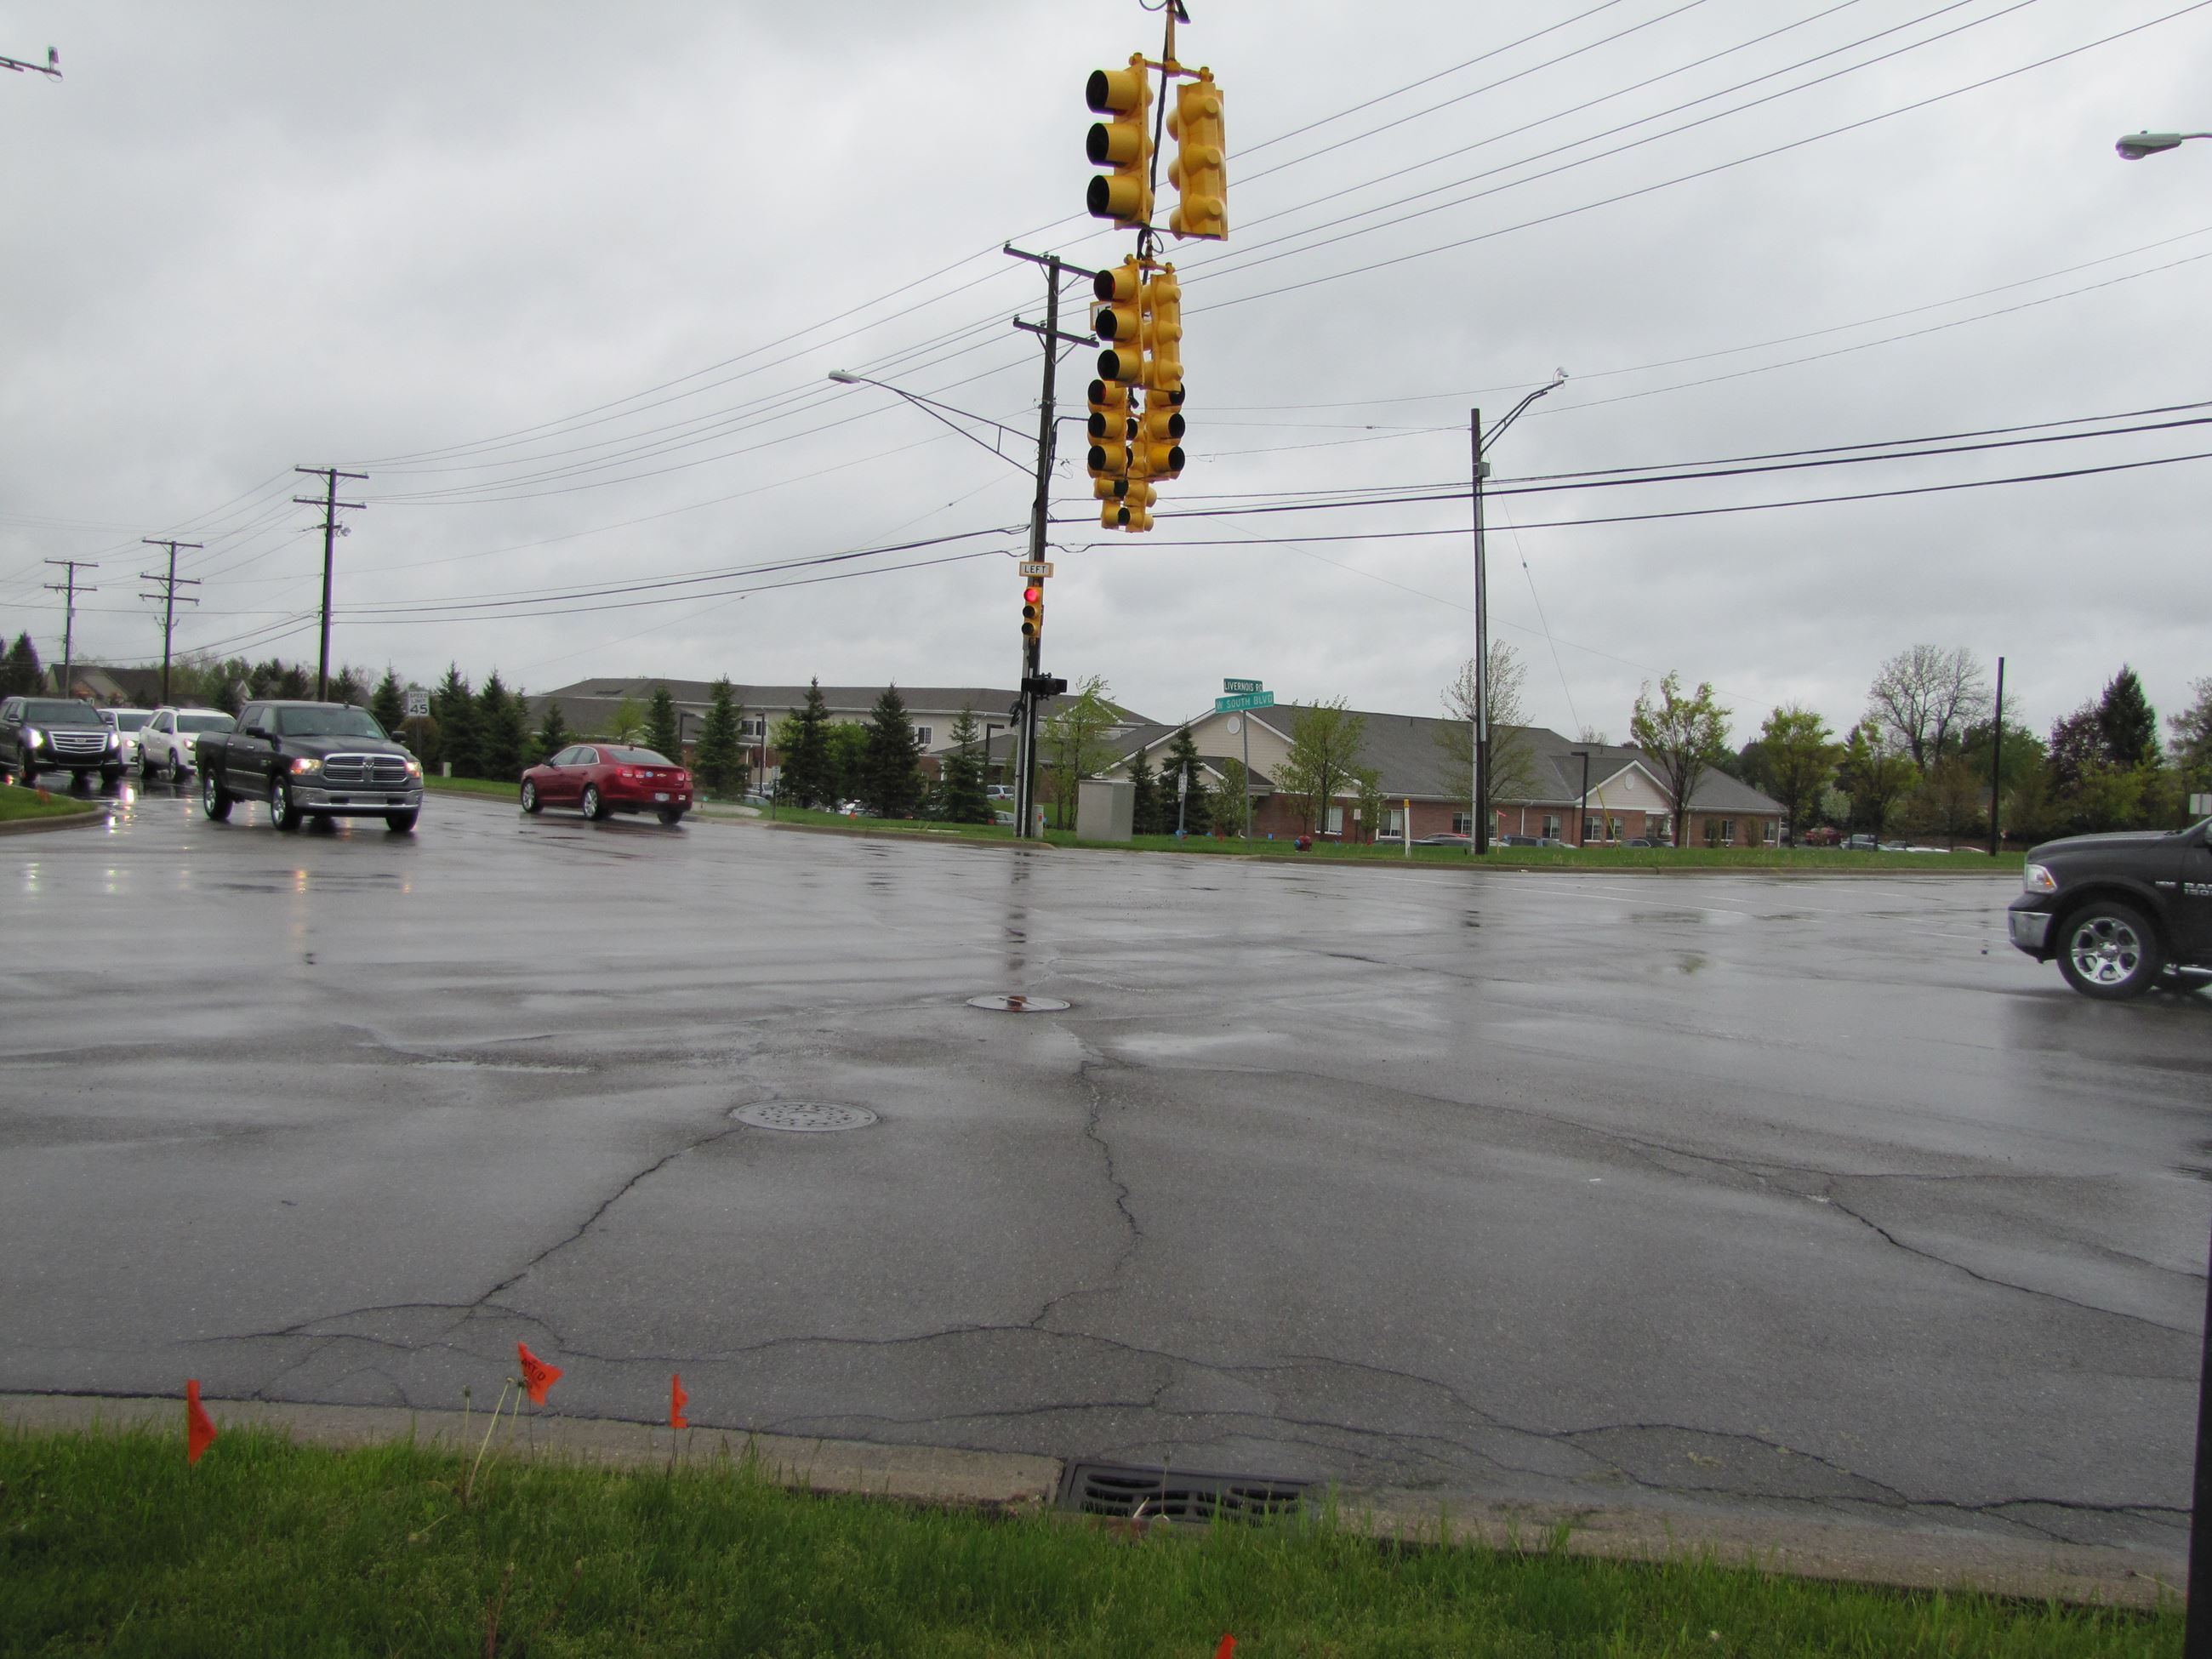 South Blvd./Livernois interesection; preconstruction